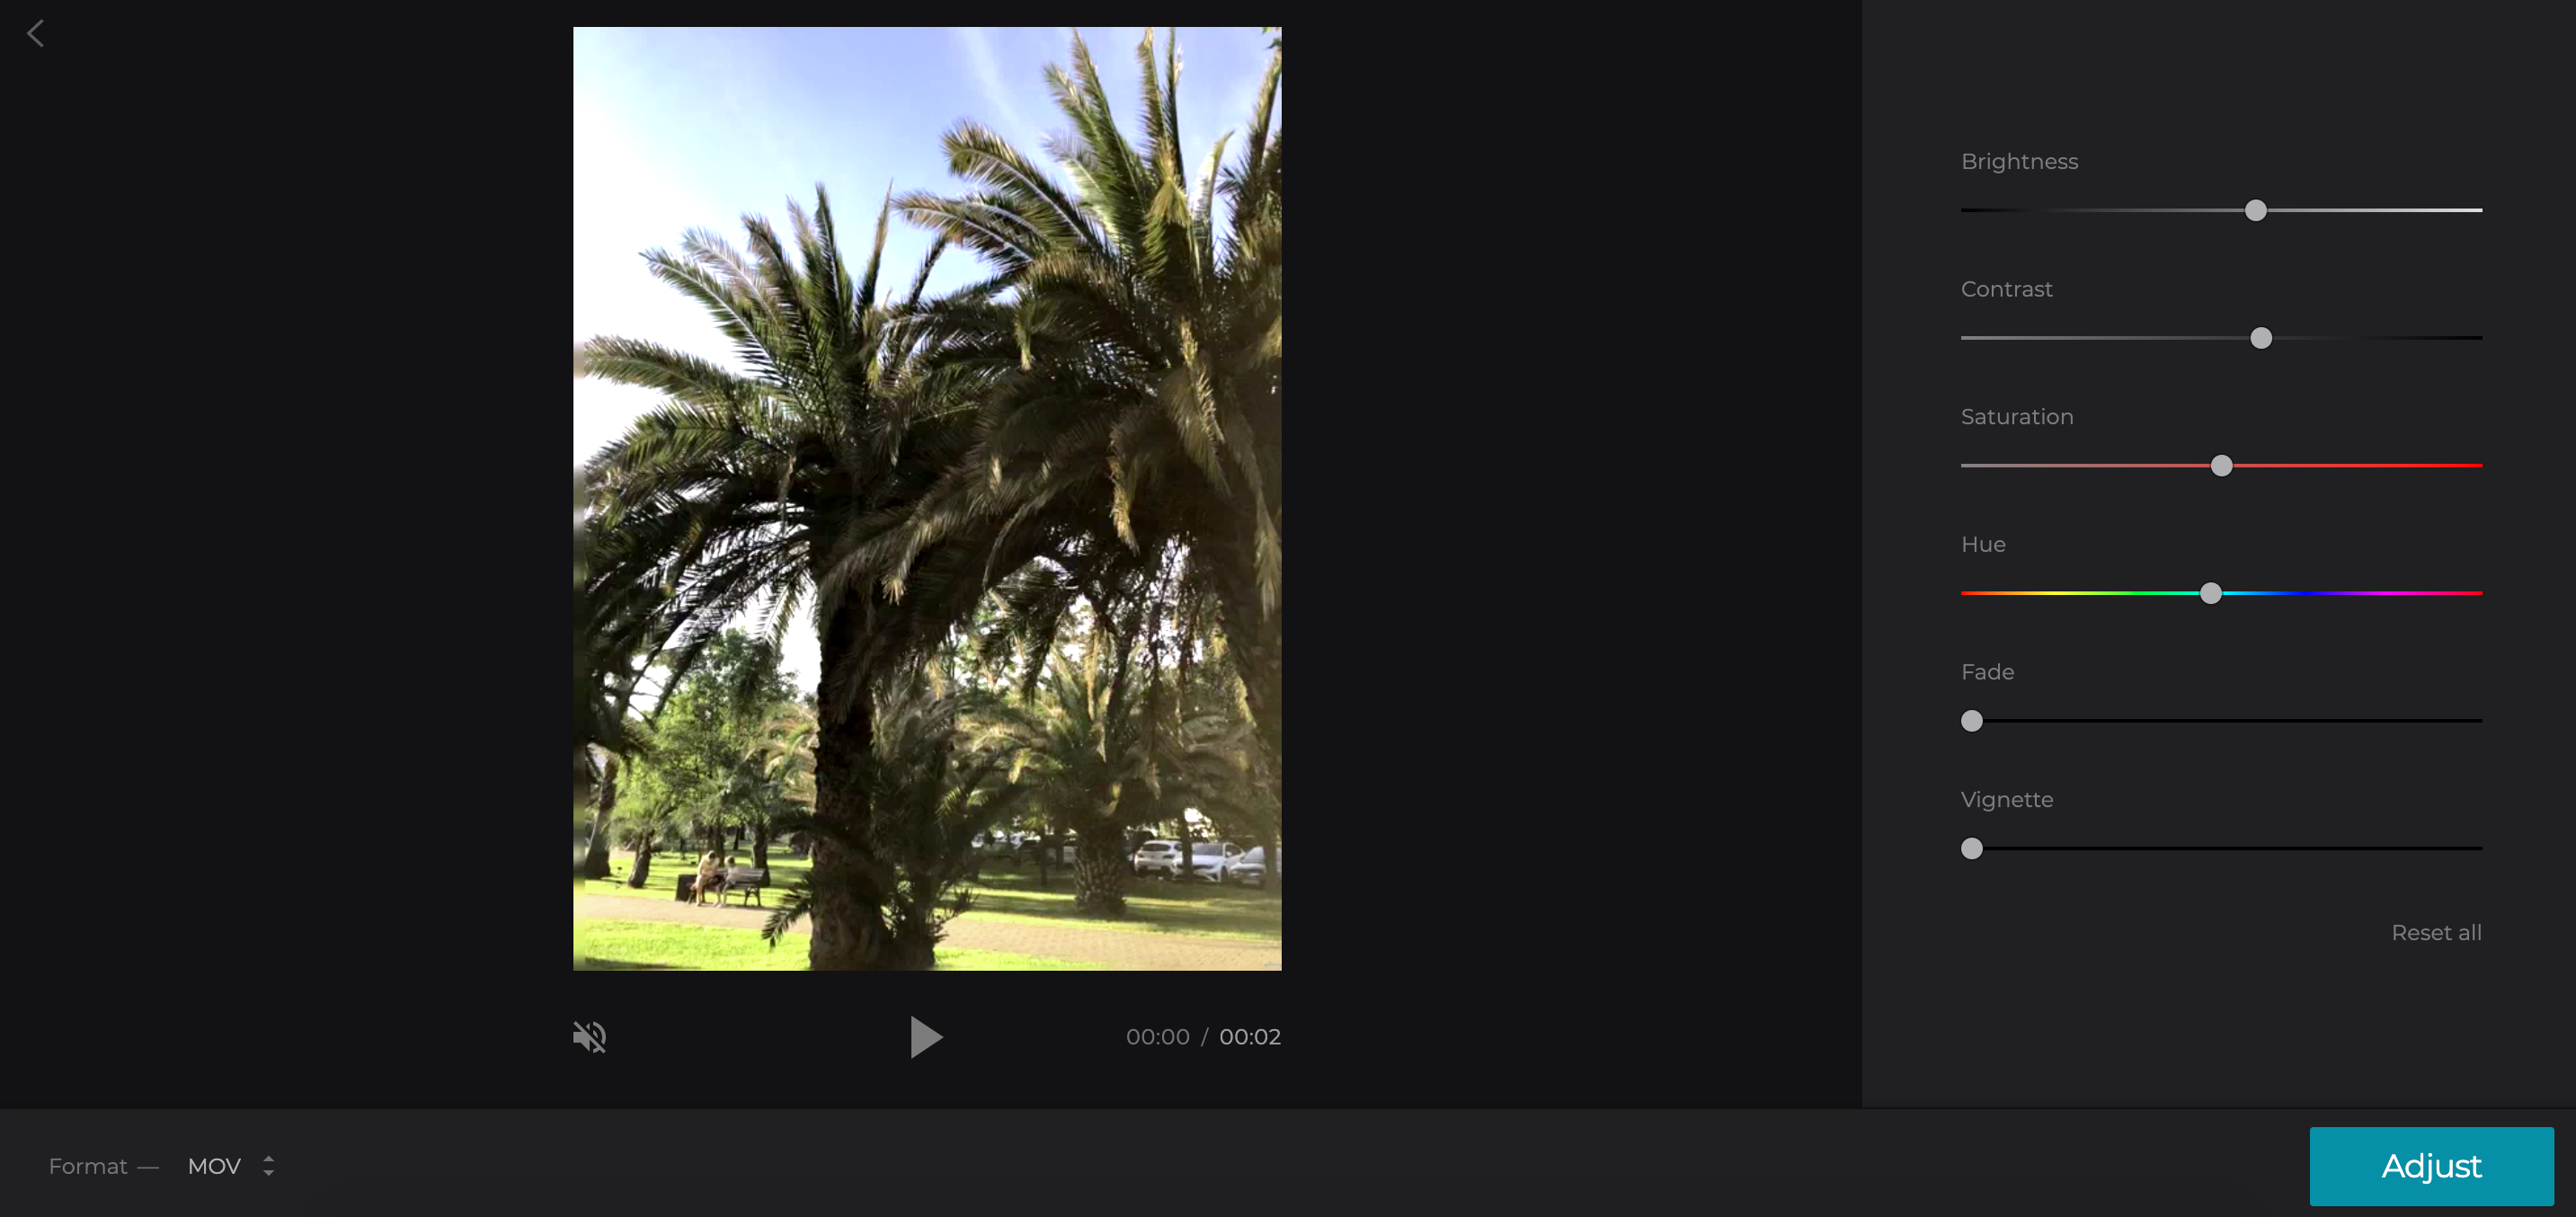 Adjust different settings to make the video clearer